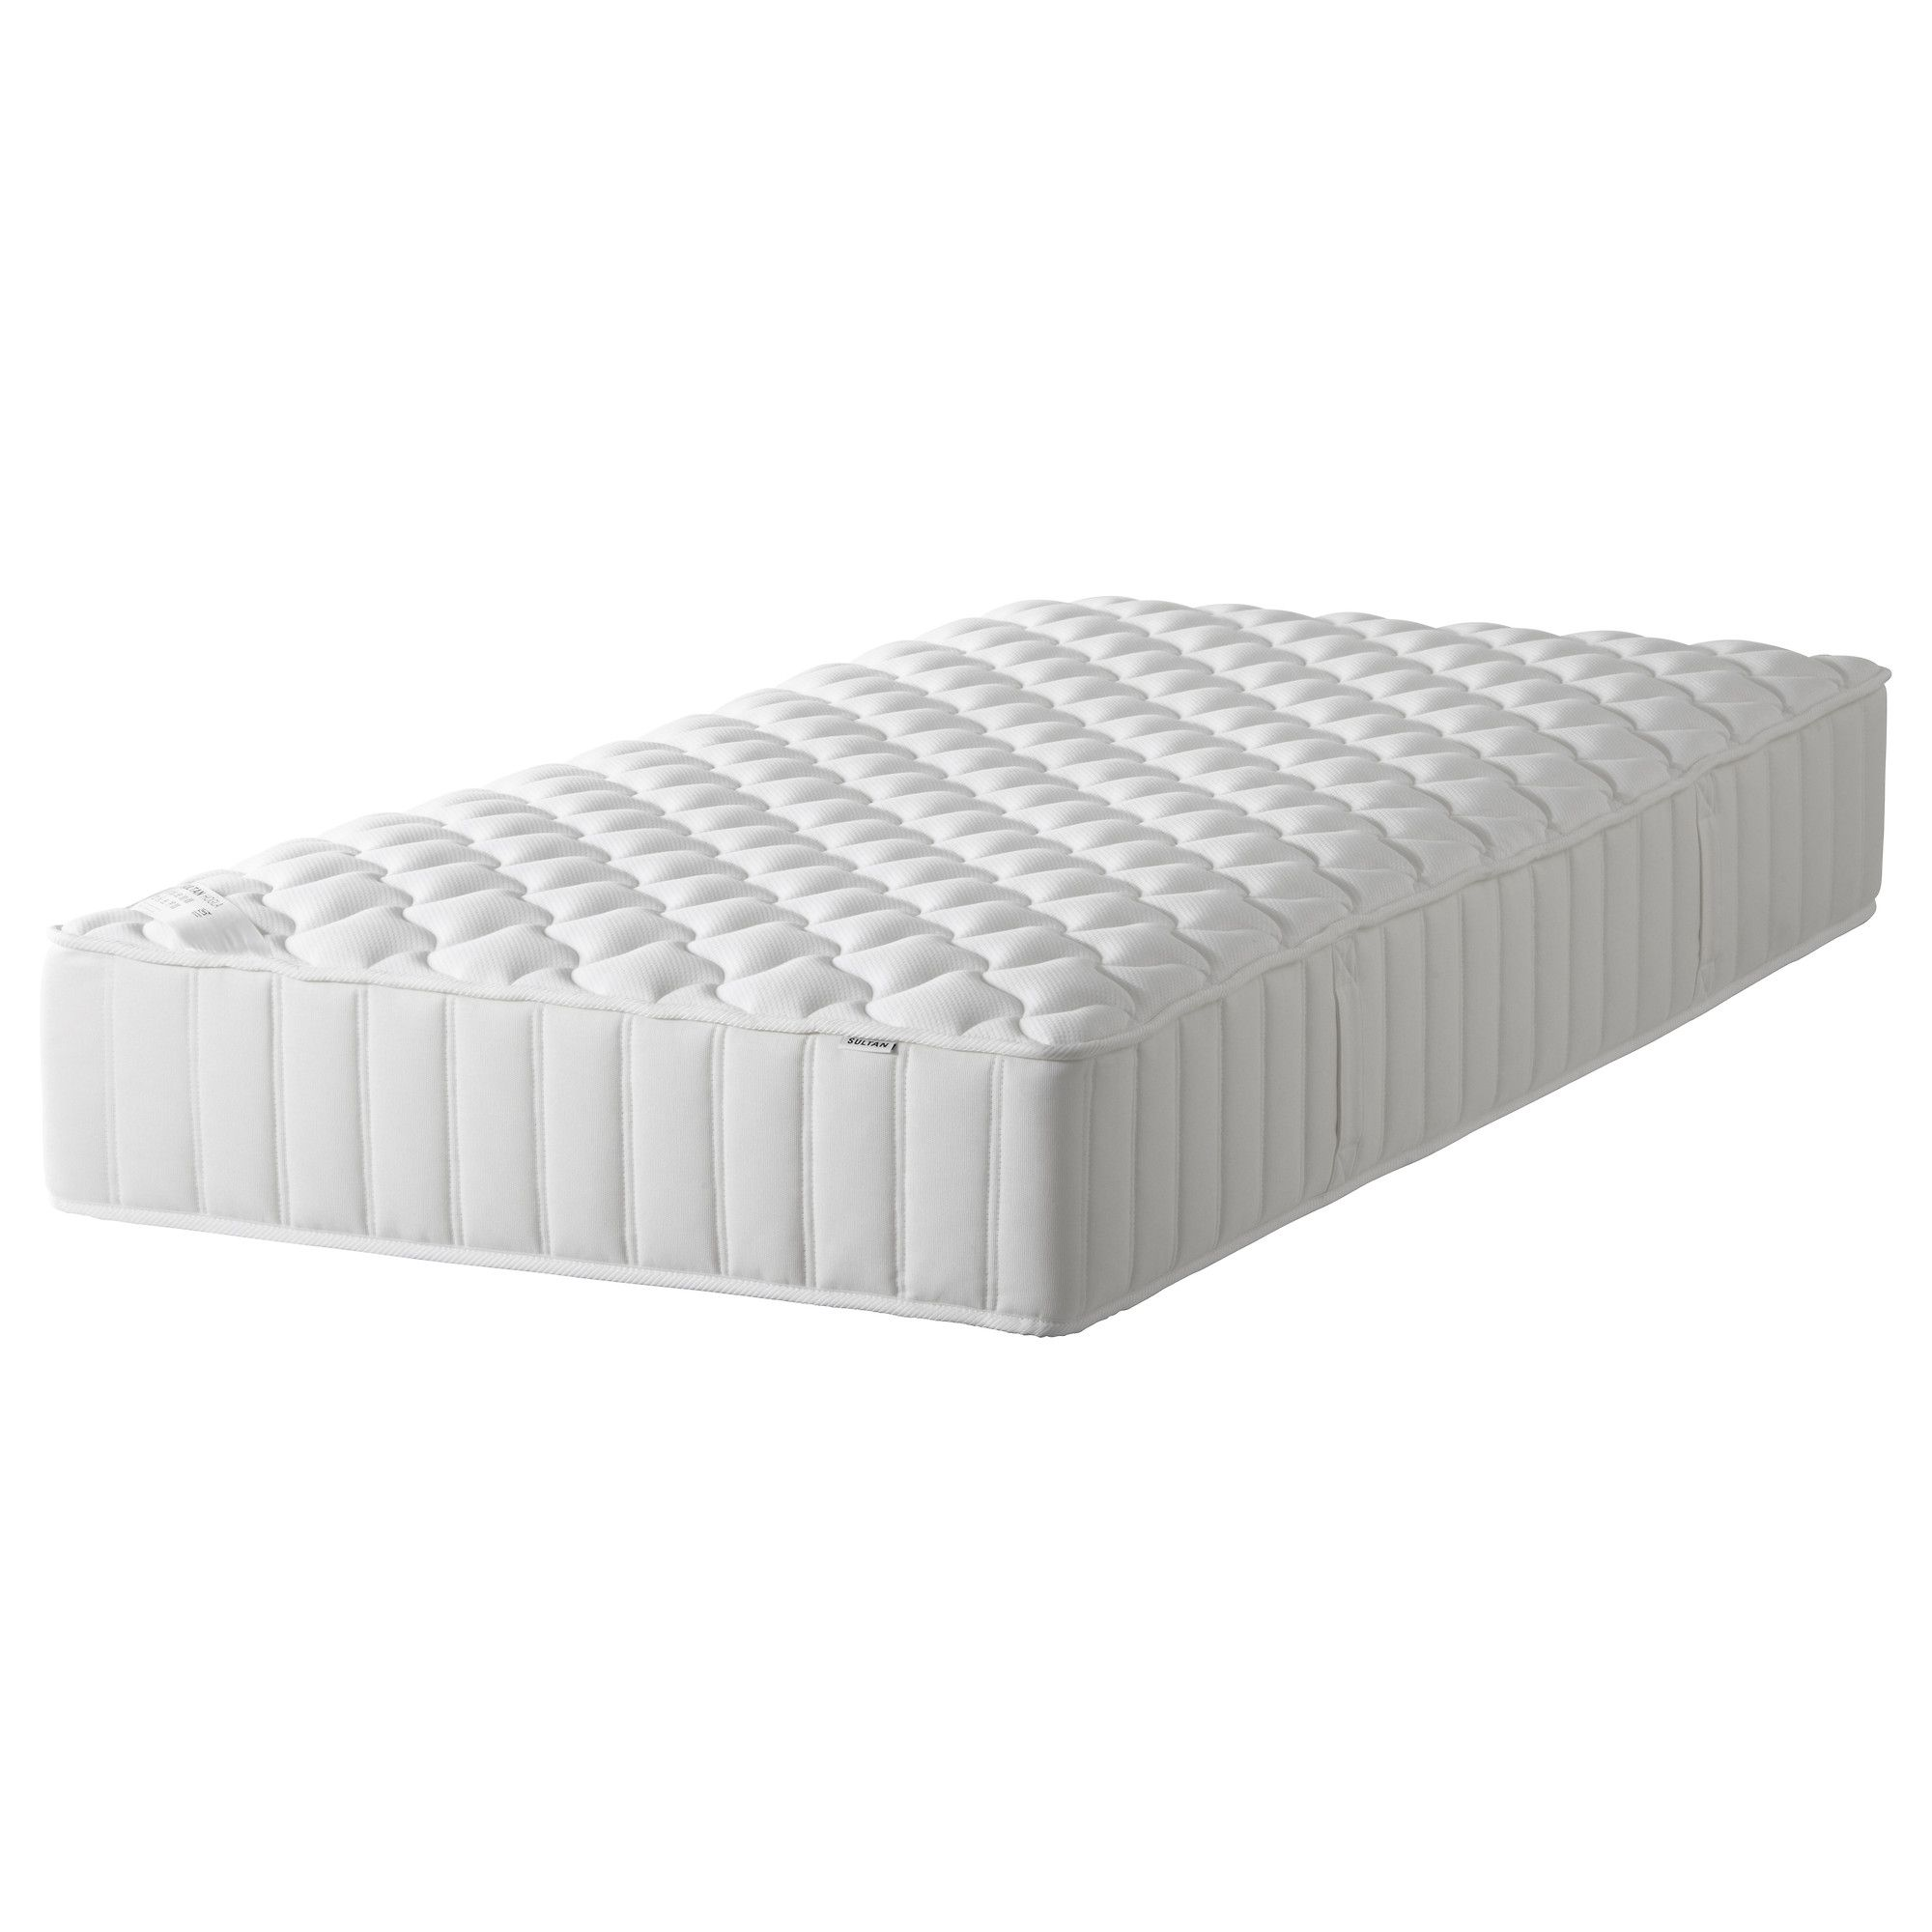 sultan hogla active response coil mattress queen ikea i need to